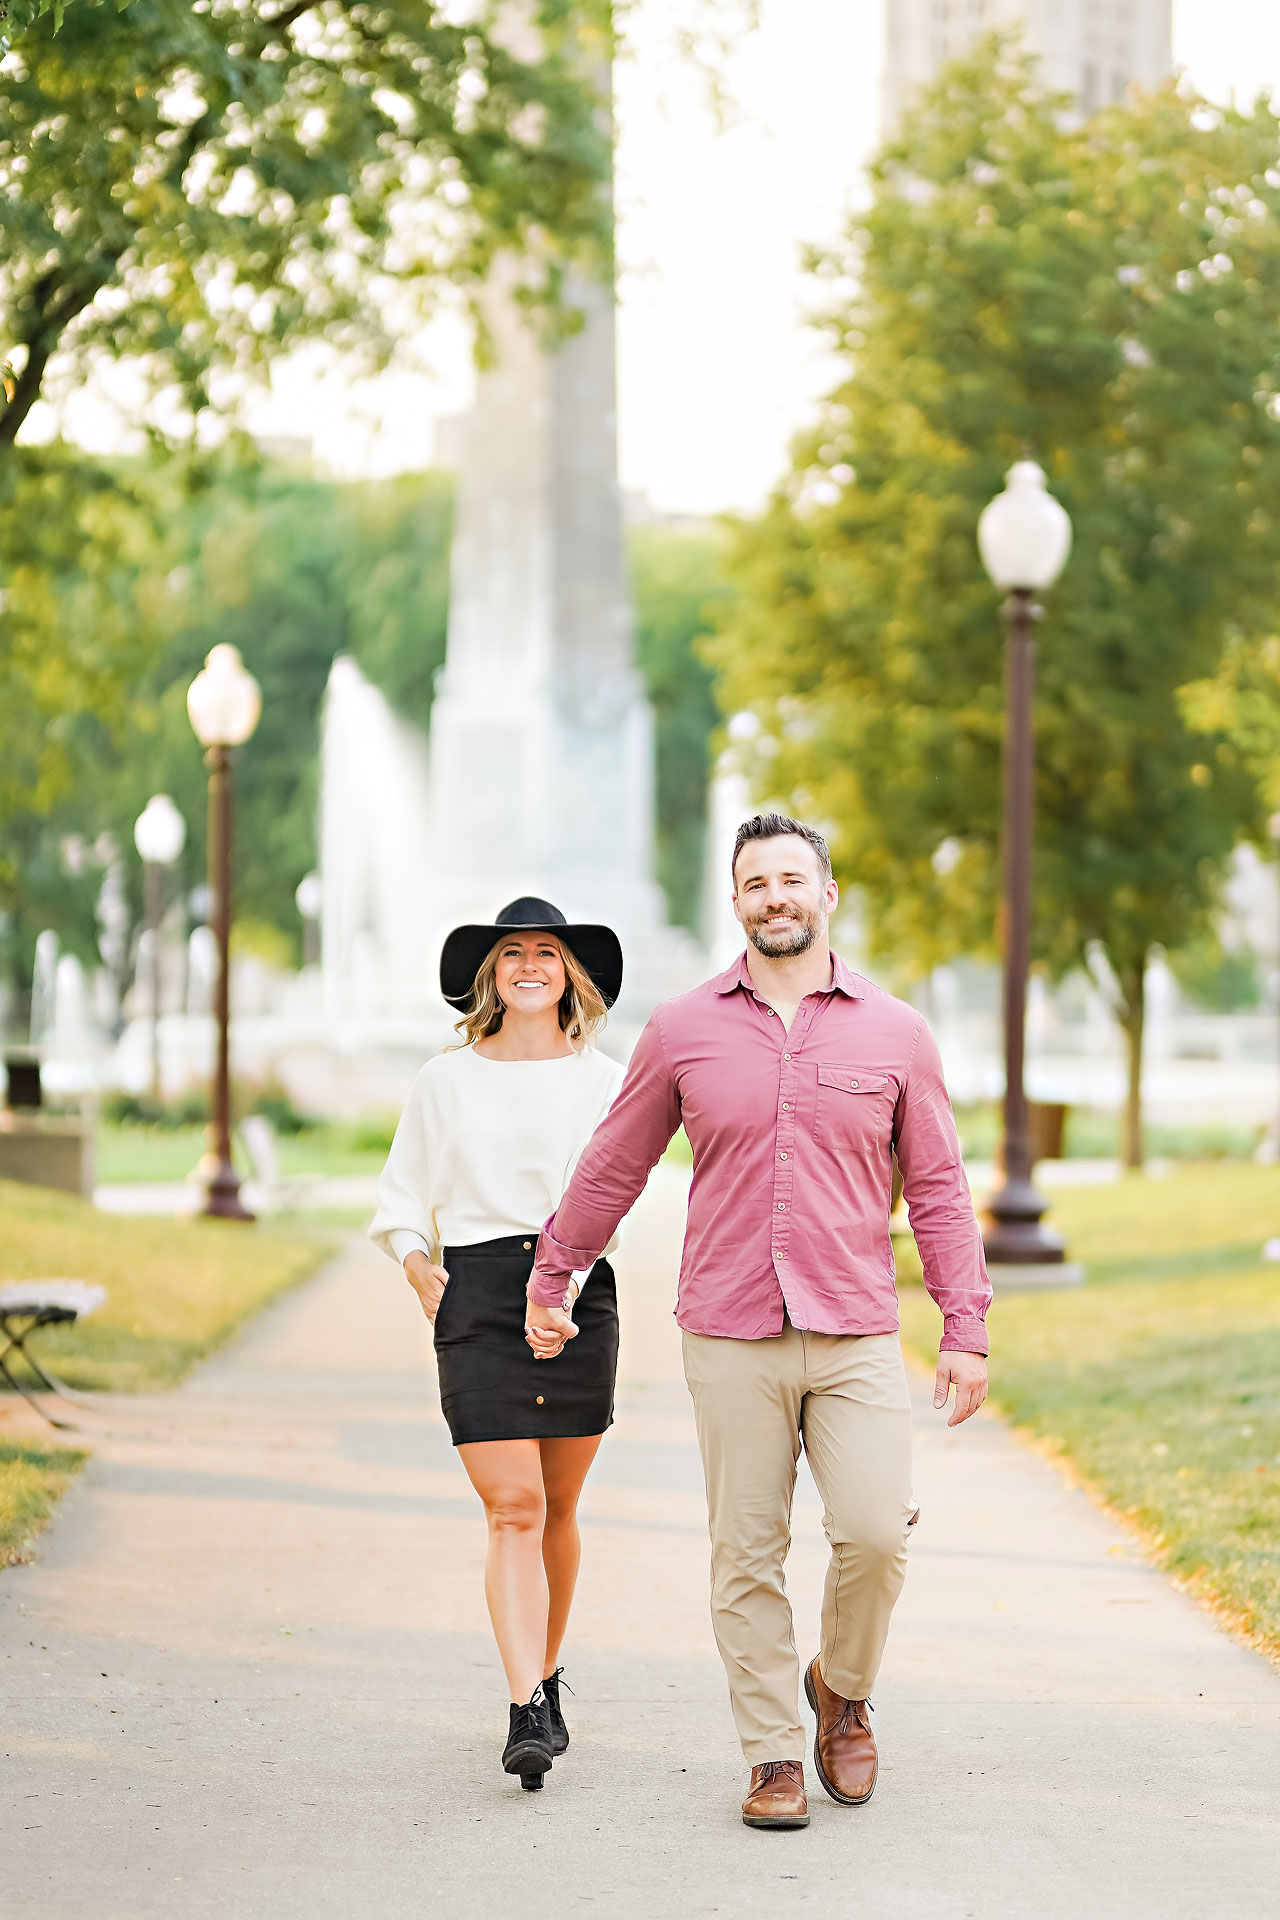 Kendall Jake Downtown Indianapolis Engagement Session 092